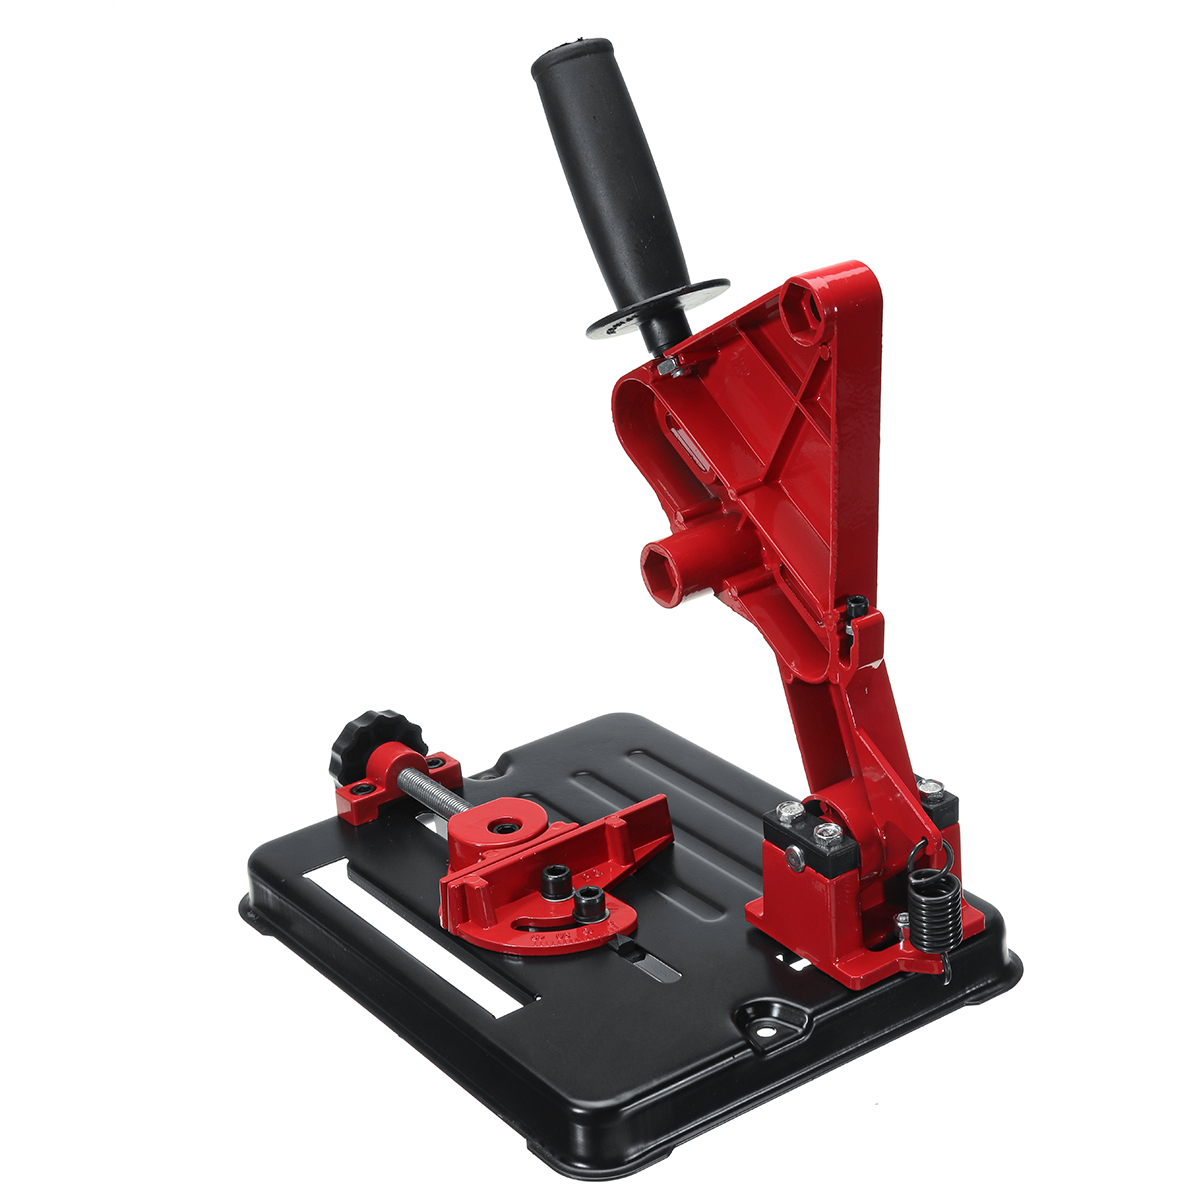 Angle Grinder Accessories Angle Grinder Holder Woodworking Tool DIY Cutting Stand Grinder Support Dremel Power Tools Accessories